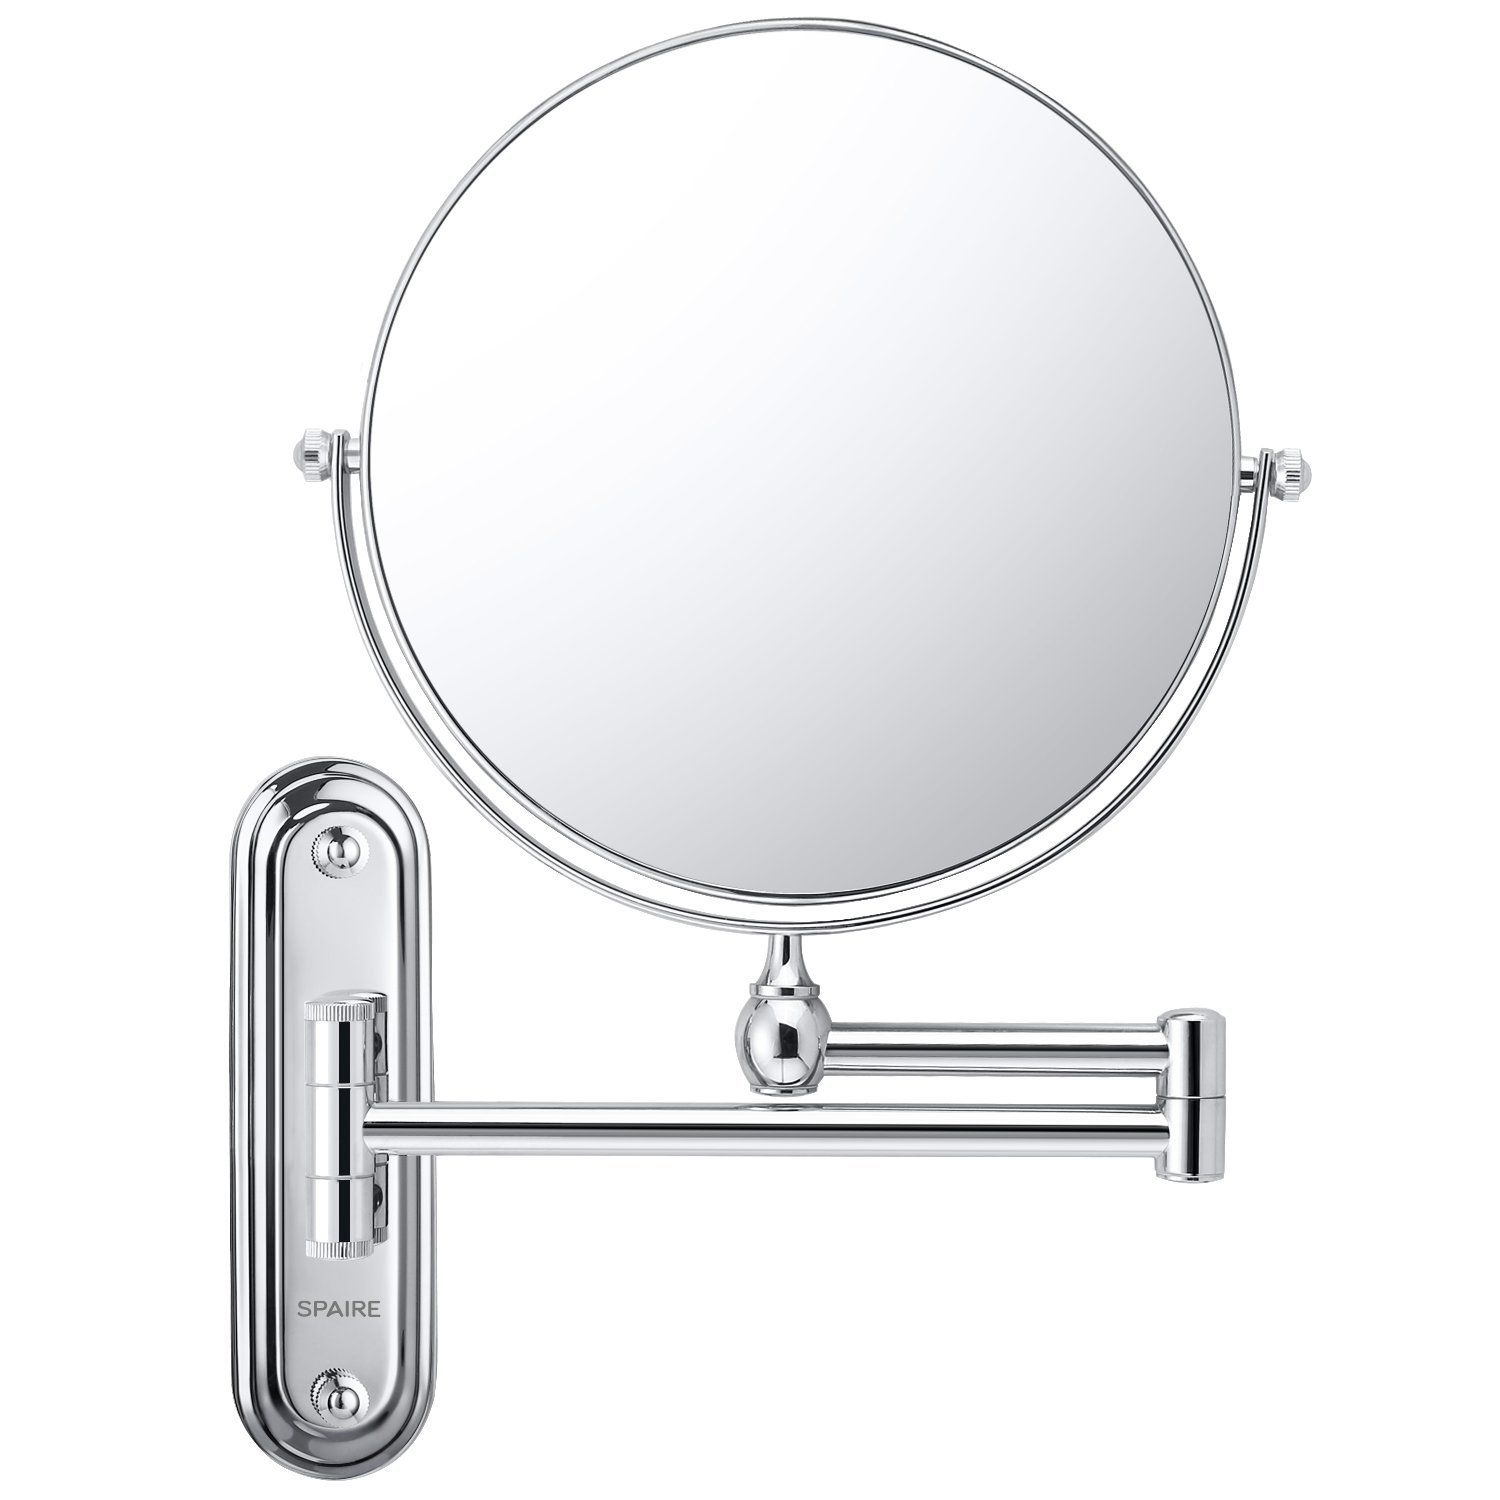 Spaire Bathroom Mirror 7x Magnification Normal Double Sided 8 Inch Wall Mounted Vanity Mirror Swivel Extendable Wall Mounted Makeup Mirror Mirror Mirror Wall